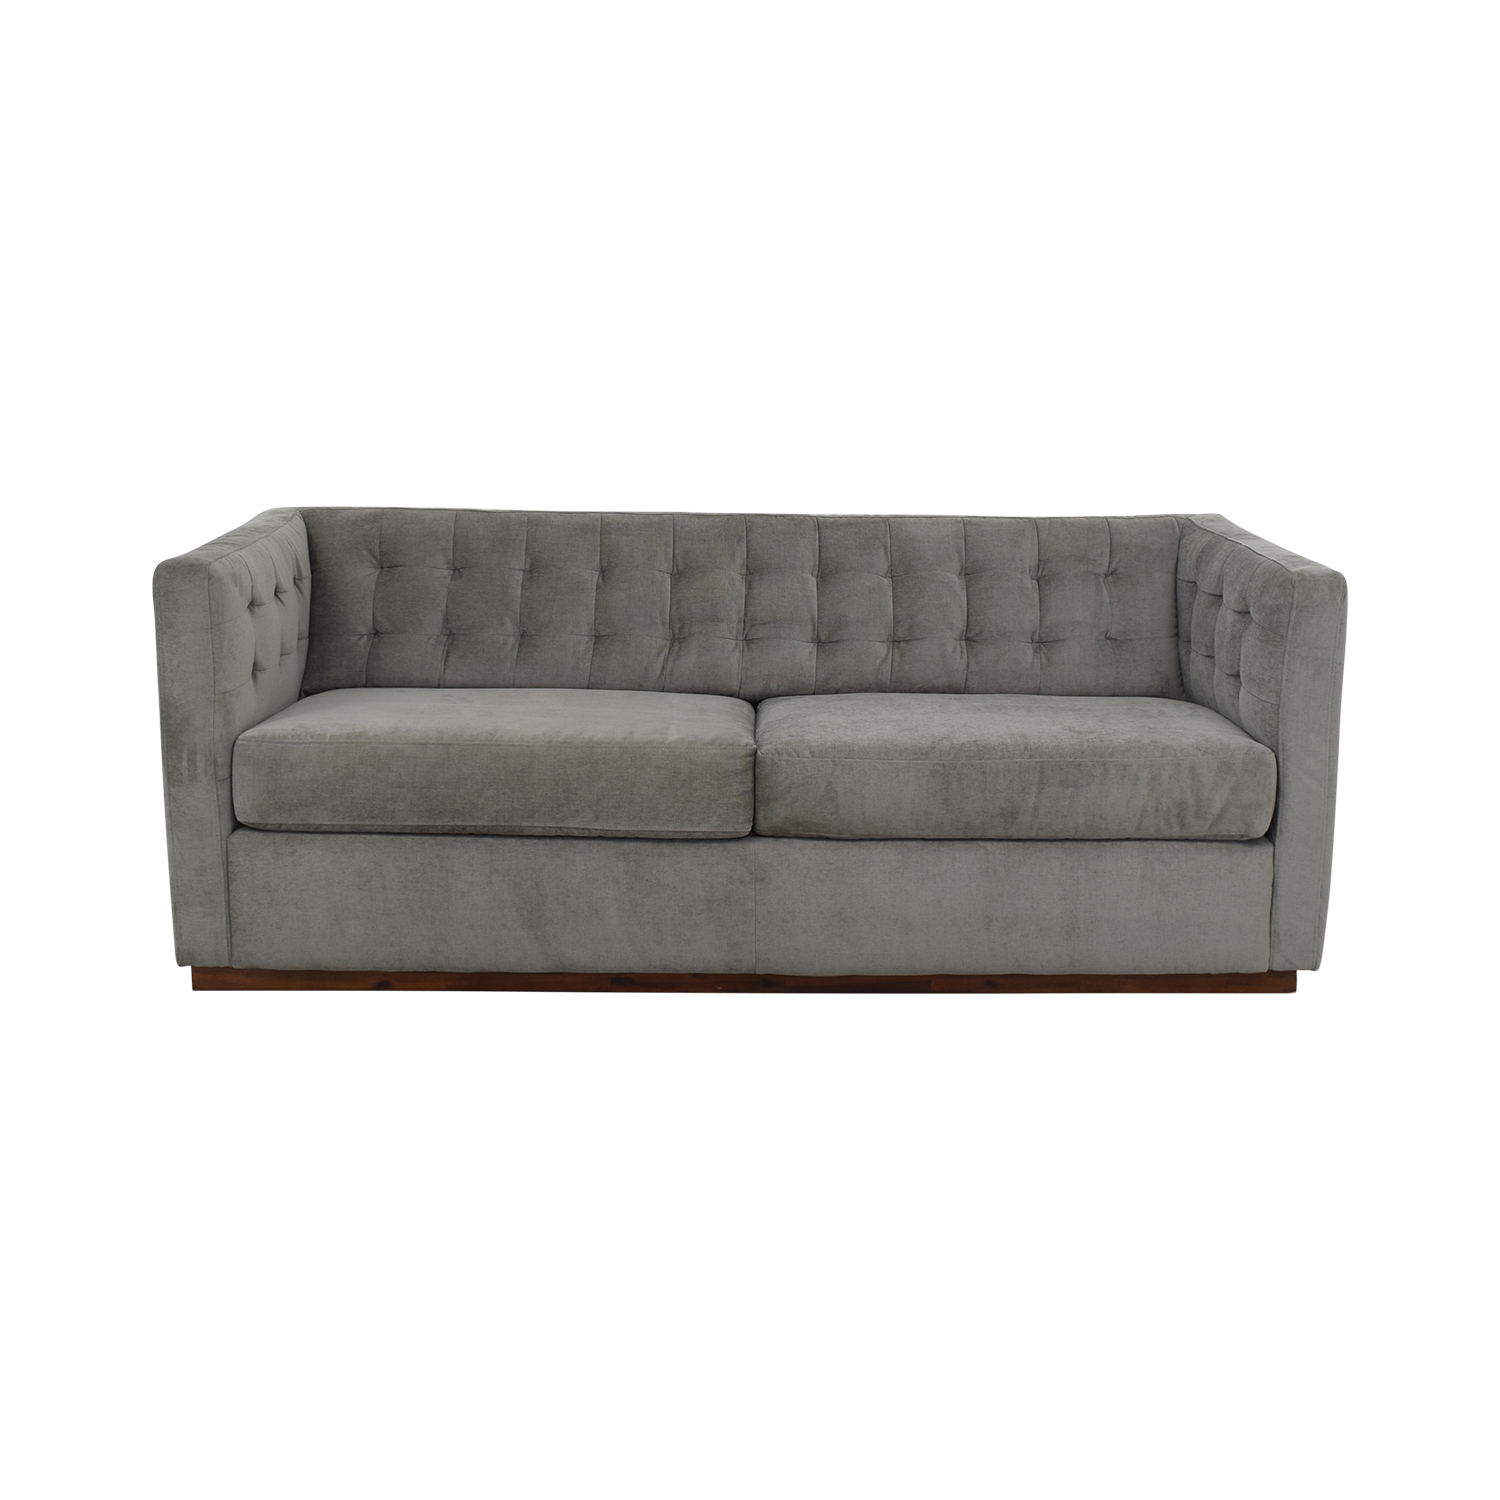 buy West Elm Rochester Sofa West Elm Classic Sofas